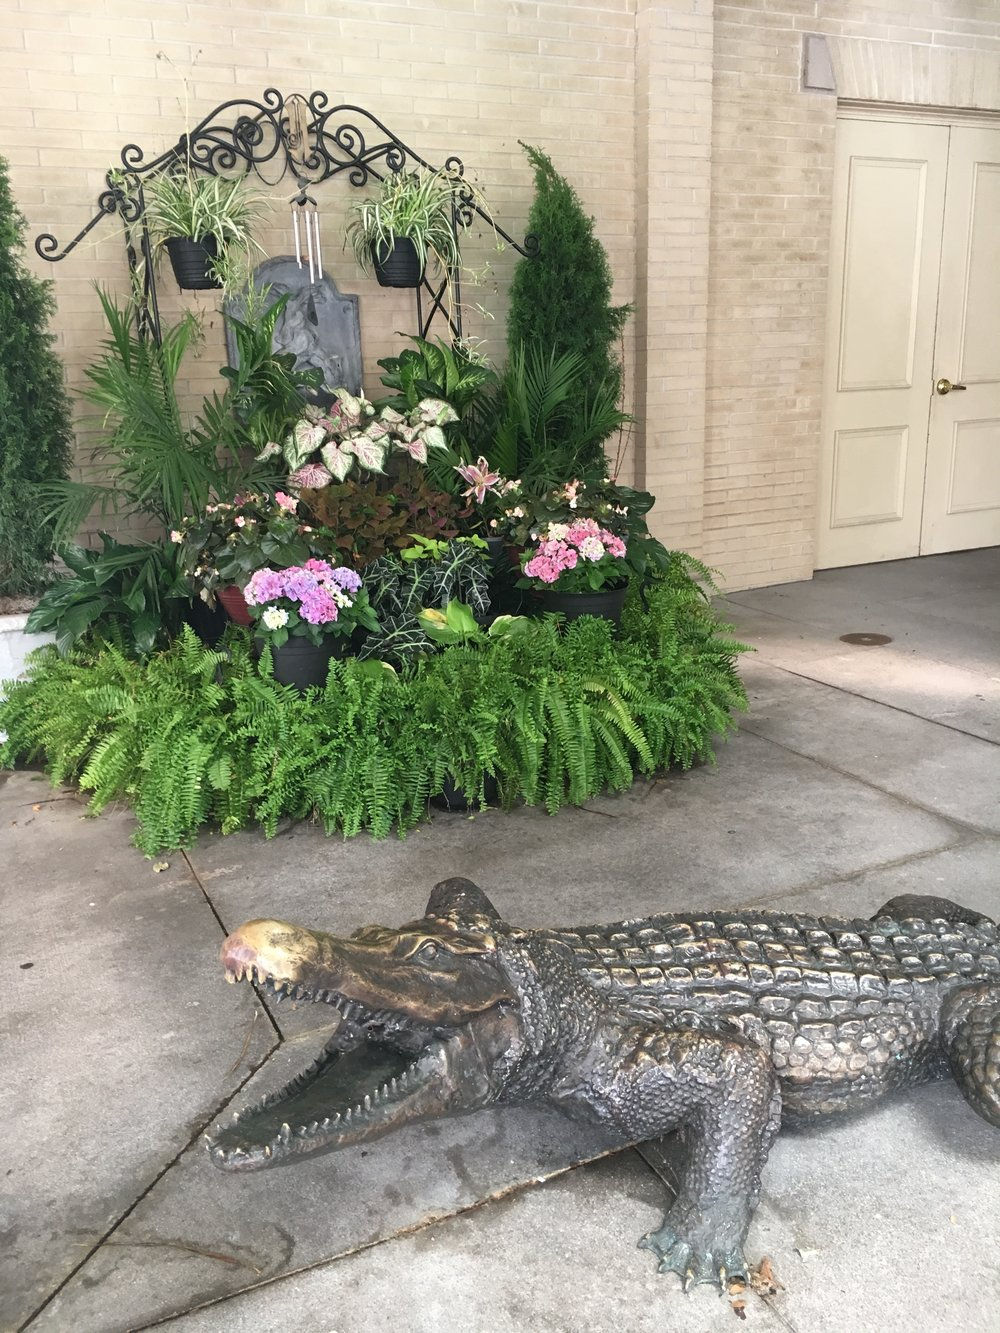 The hotel used to have live alligators at one point. Thankfully, no more!